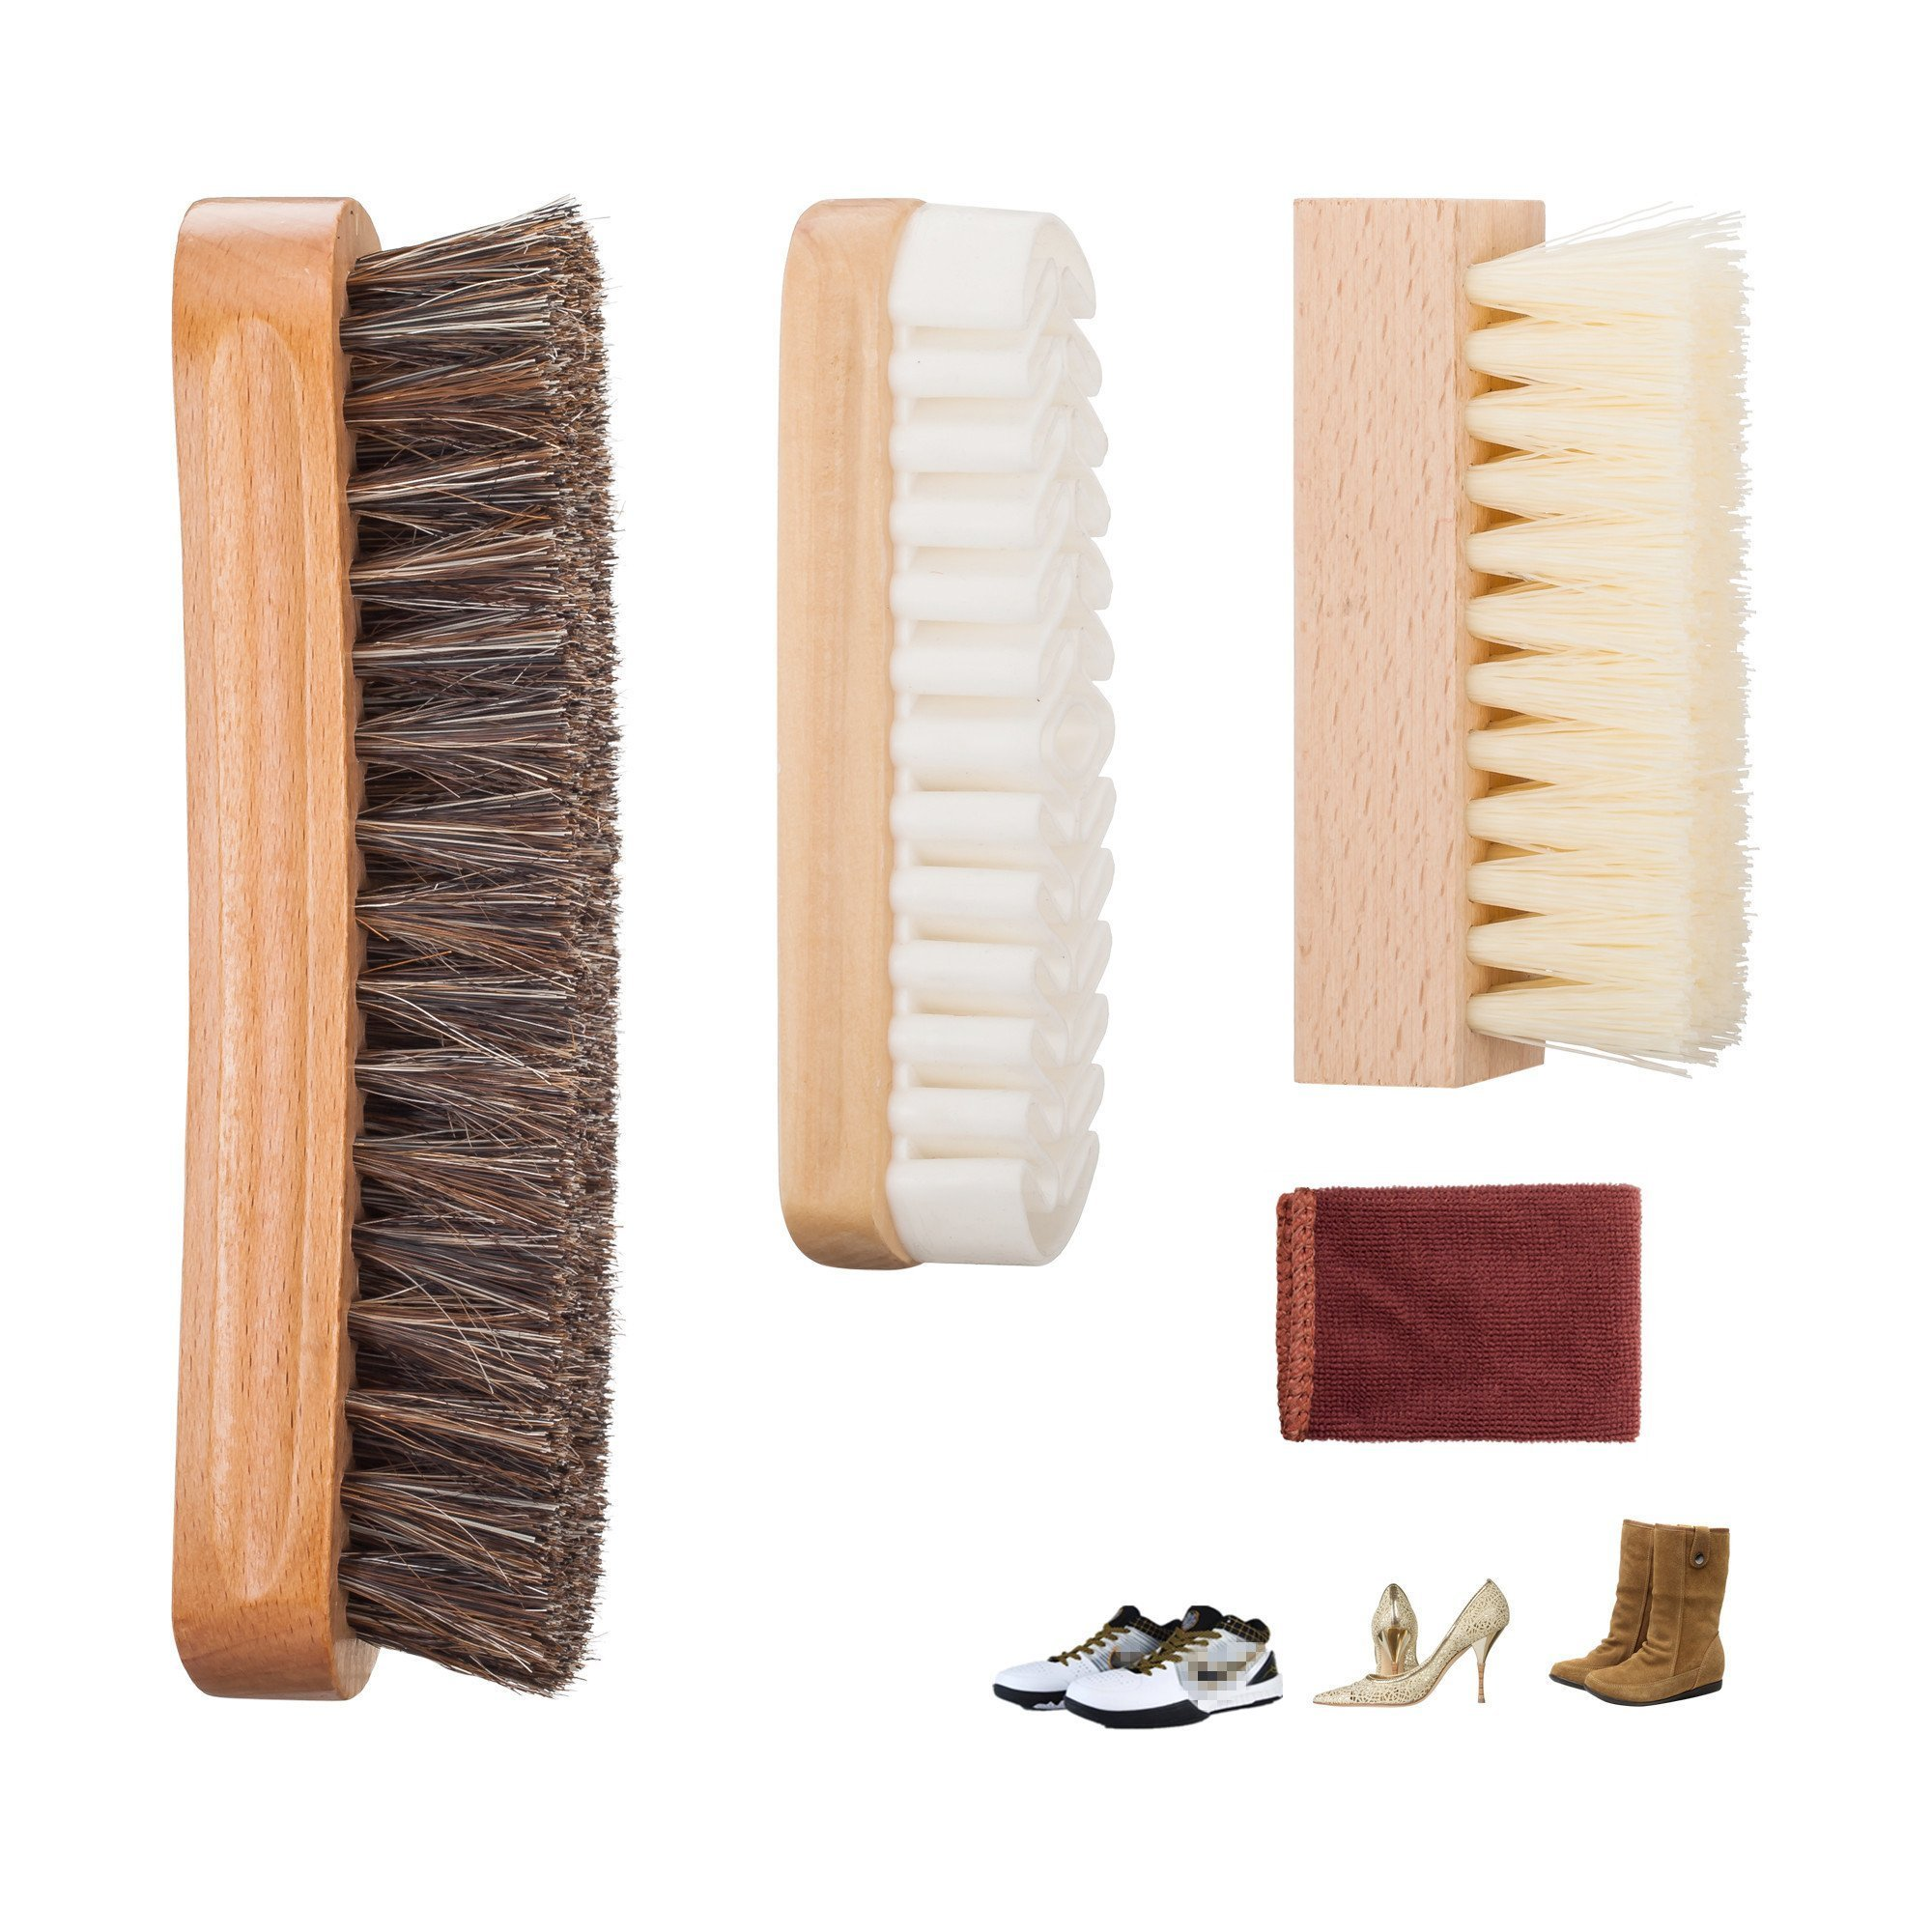 Premium Shoe Brush Kit & Valet with Horsehair Shine & Crepe Suede Leather & Synthetic Bristle Handcrafted Wood Block Brush for Shoes brushing, Bags, Leather cloth clean- 3 Pieces by chuanyuekeji (Image #1)